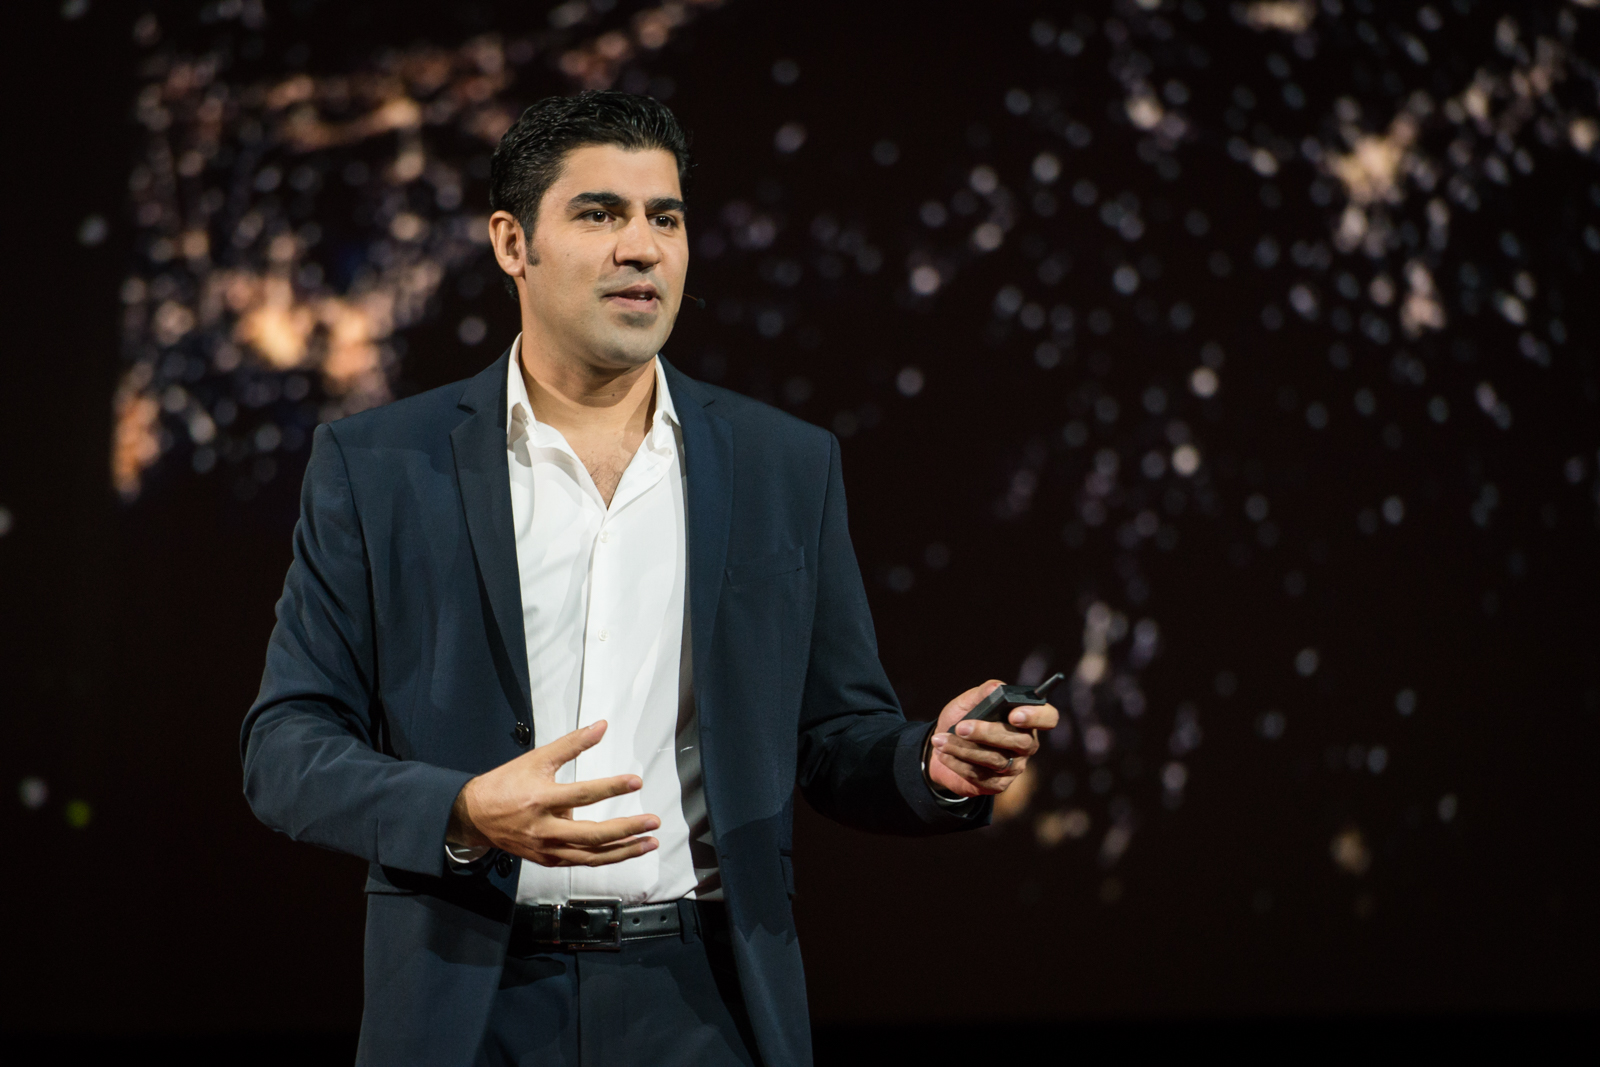 Parag Khanna speaks at TED2016 - Dream, February 15-19, 2016, Vancouver Convention Center, Vancouver, Canada. Photo: Bret Hartman / TED